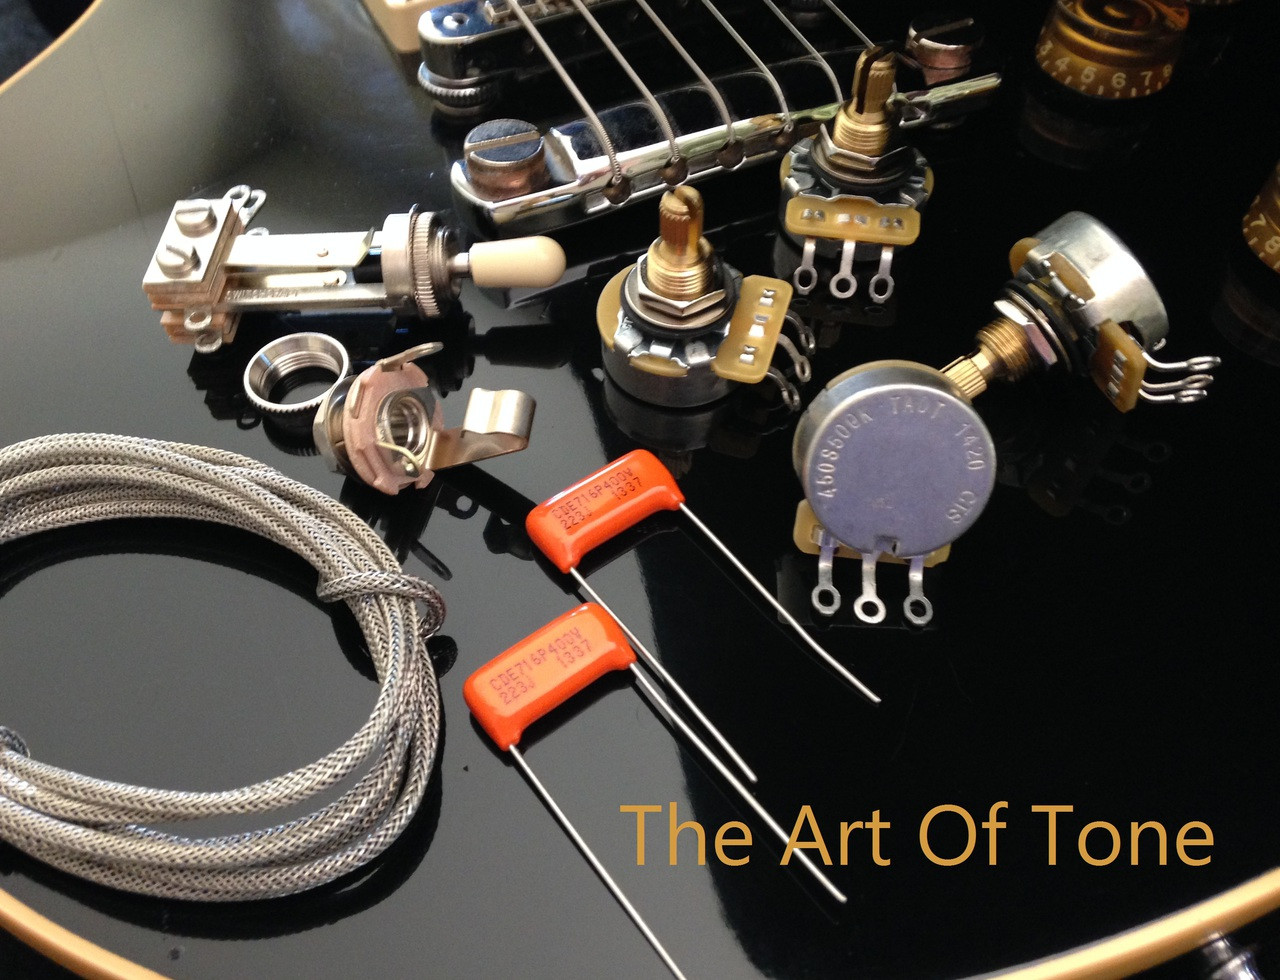 medium resolution of taot gibson les paul wiring kit short shaft orange drop caps the art of